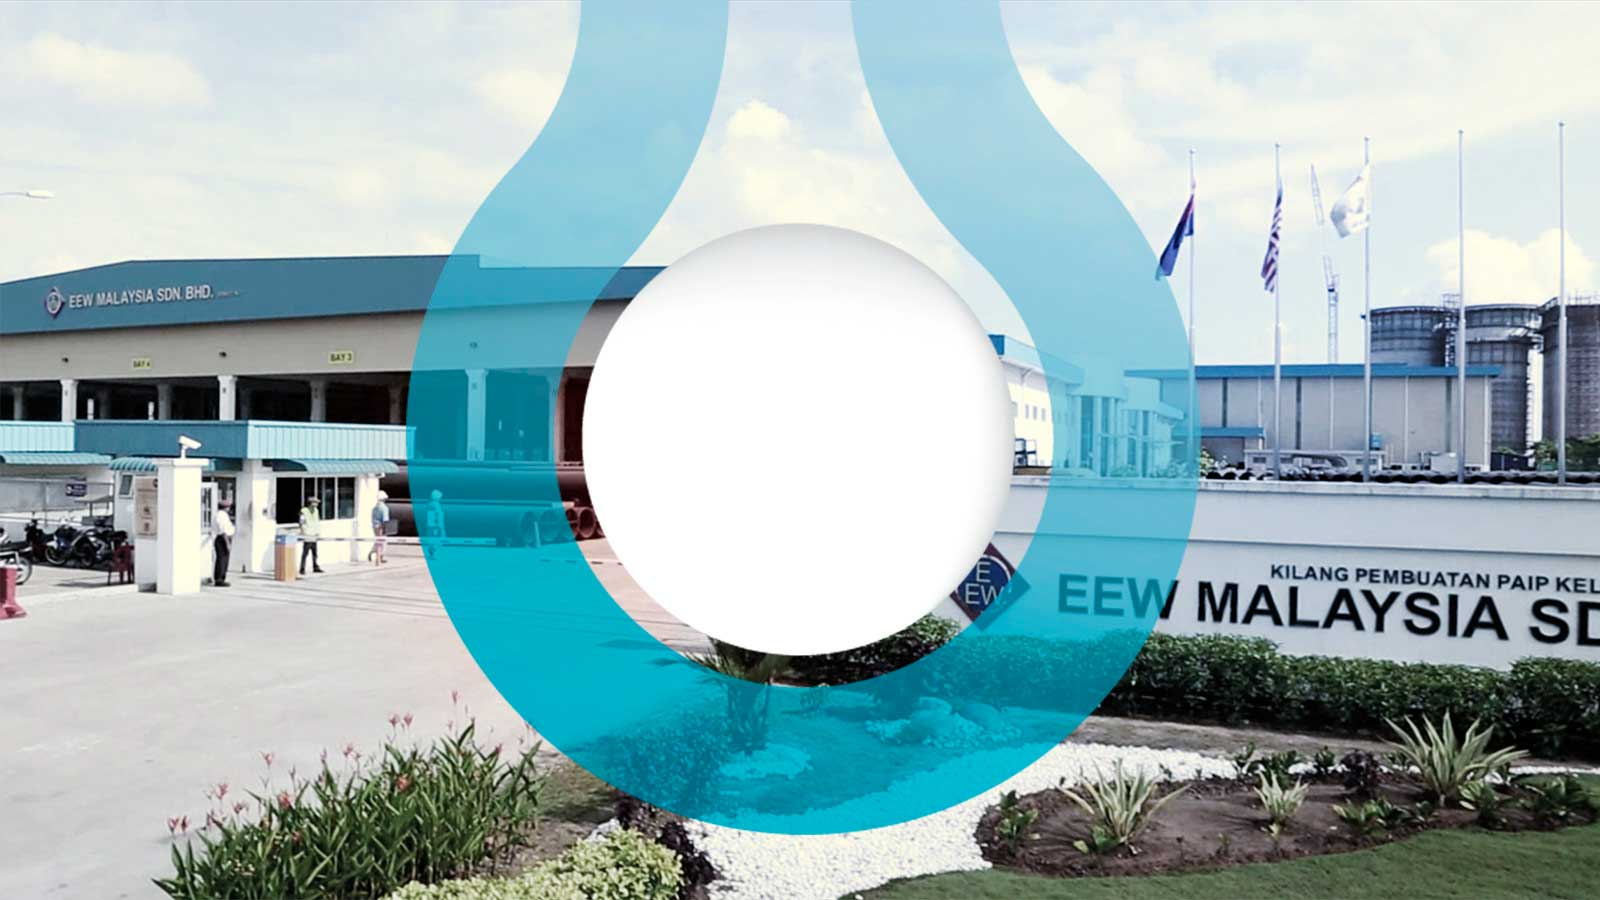 The entry of EEW Malaysia